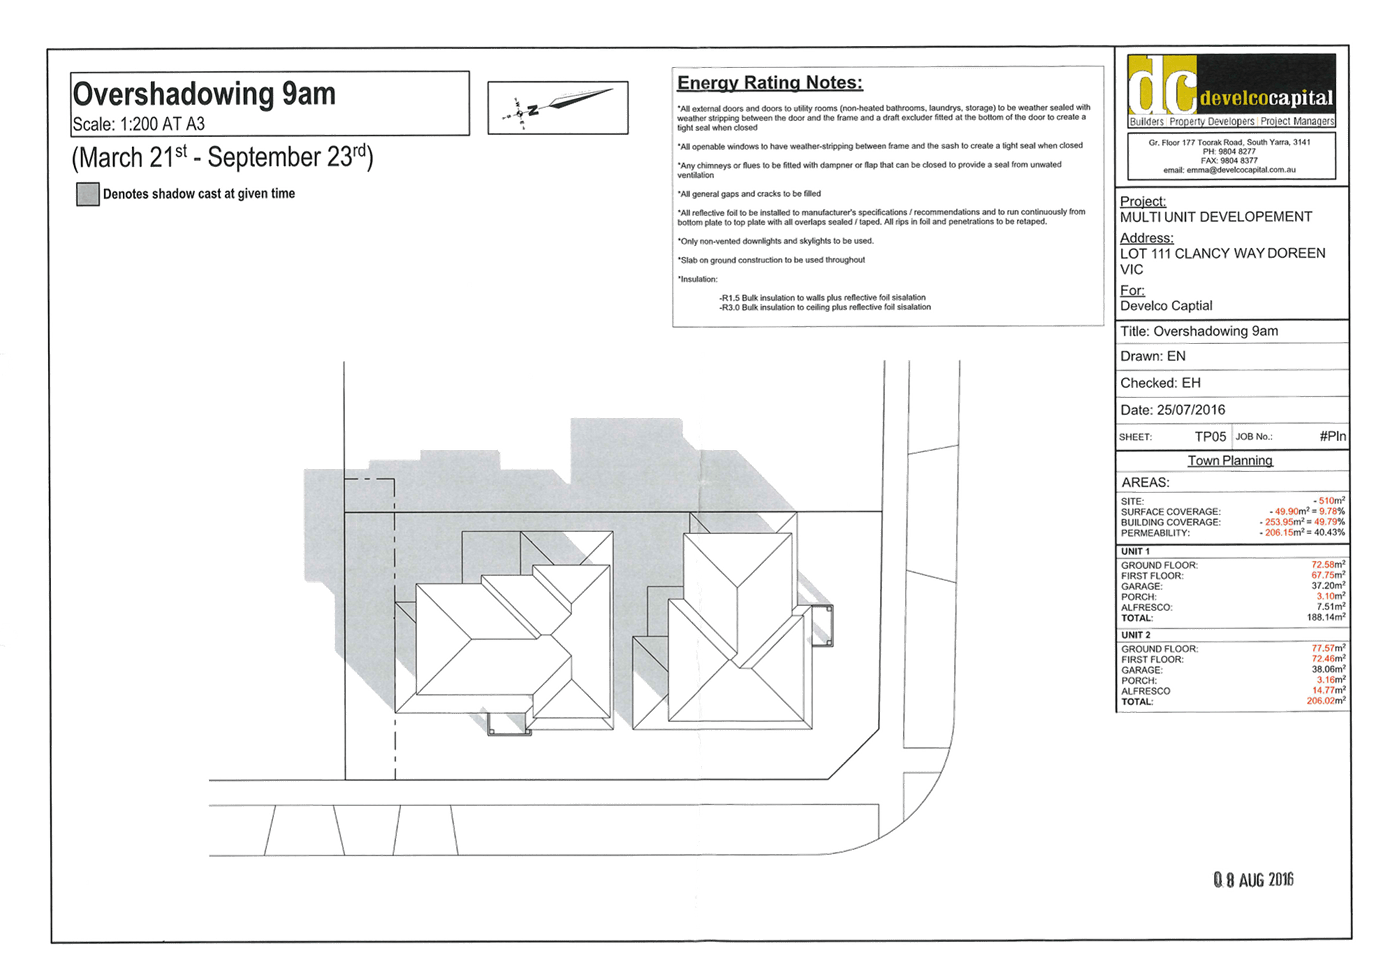 how to draw shadow diagrams pioneer deh p4900ib wiring diagram agenda of council 28 february 2017